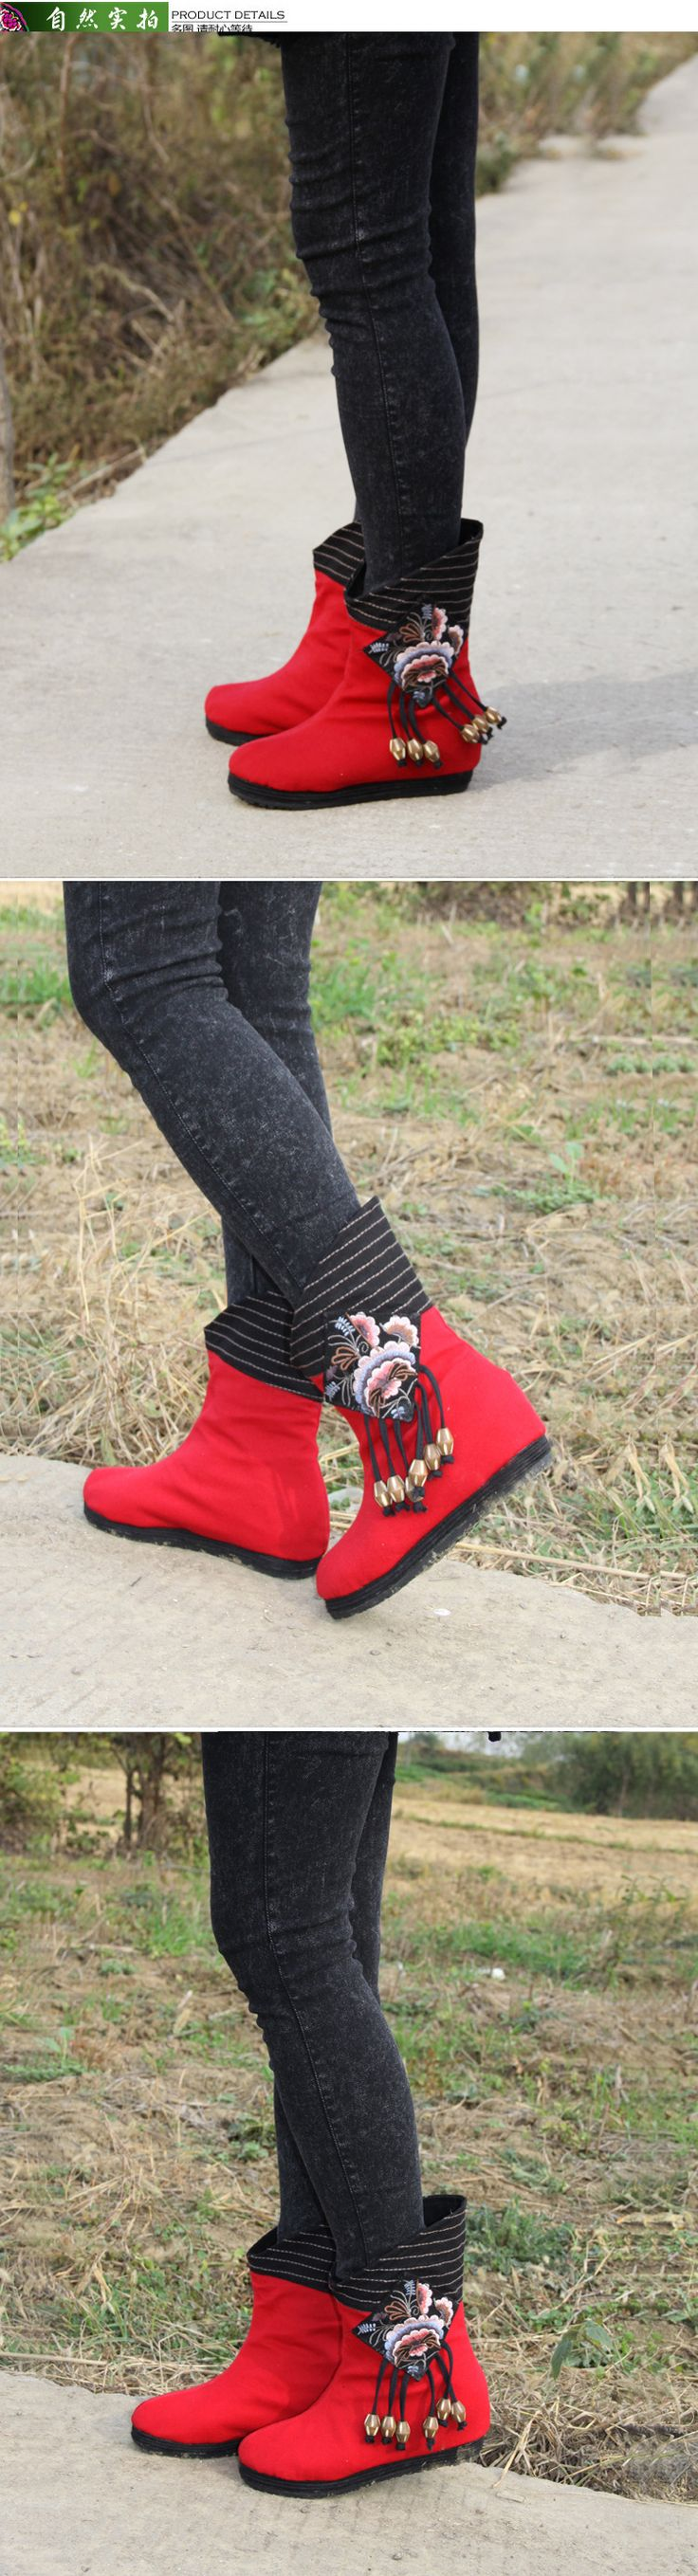 Plate forme Fringe Bottes Femmes Automne Hiver Vintage Bottes Slip on Chaussures Toile Chaussures Appartements Occasionnels Chaussures dans Femmes de Bottes de Chaussures sur AliExpress.com | Alibaba Group